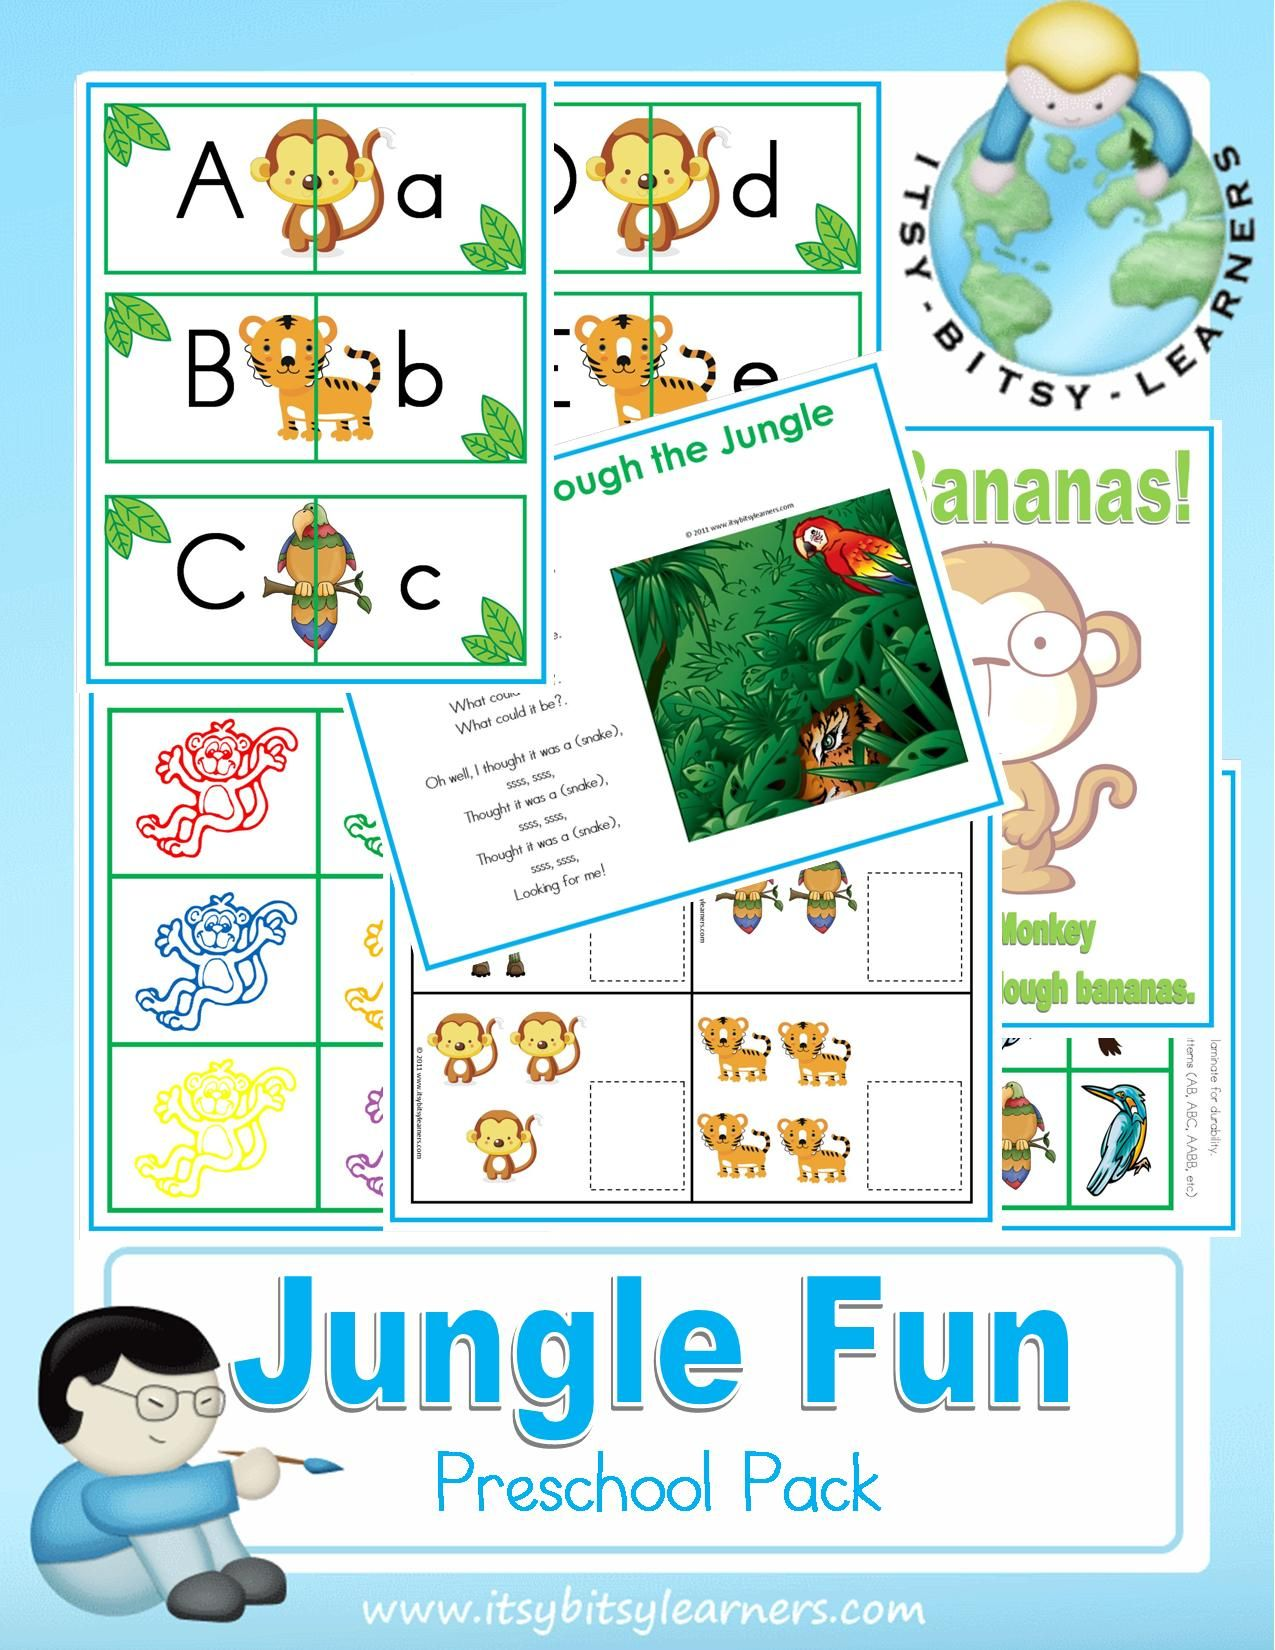 Free Preschool Kindergarten Printable Packs Including Cut Paste Shape Pages Shape Coloring